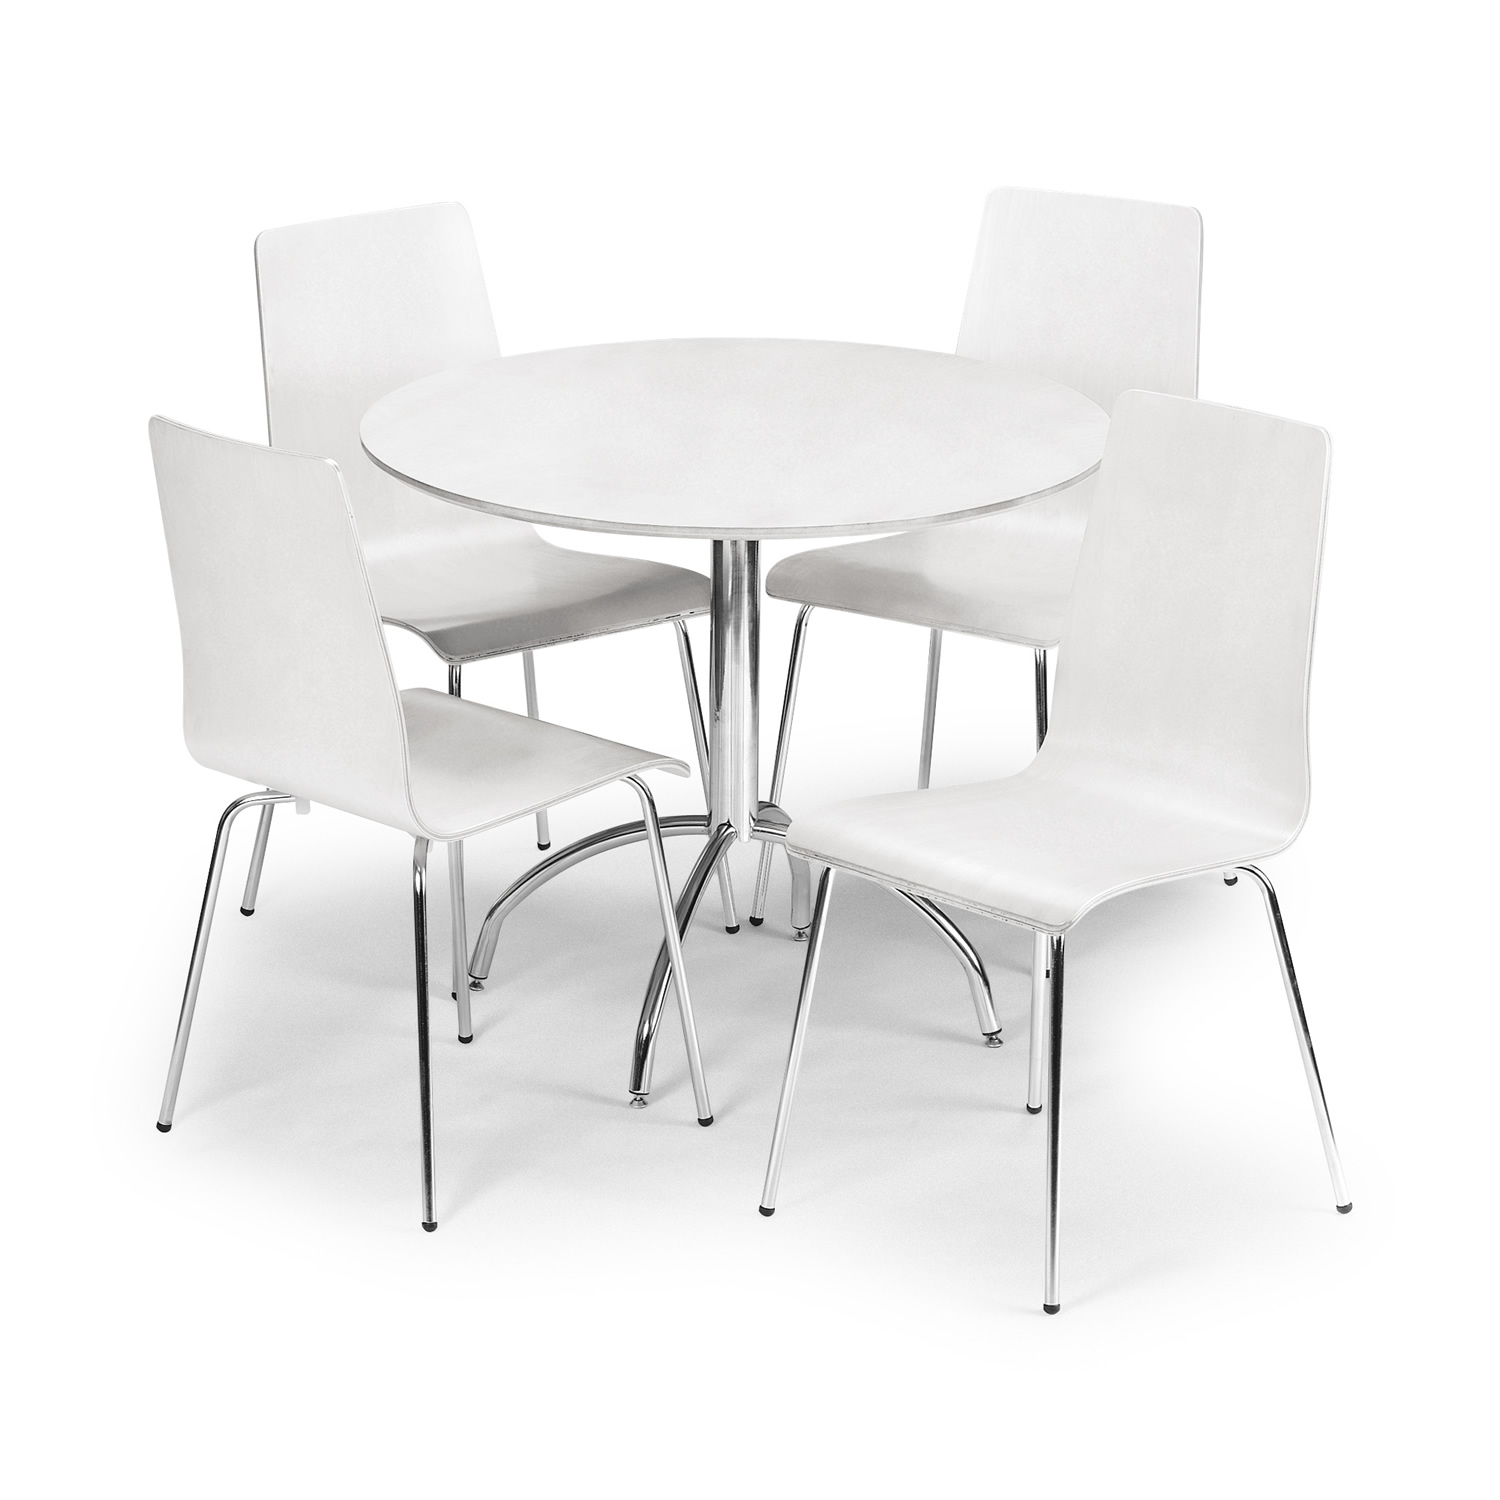 Interior White Round Wooden Table With Silver Steel Legs Of Four Chairs